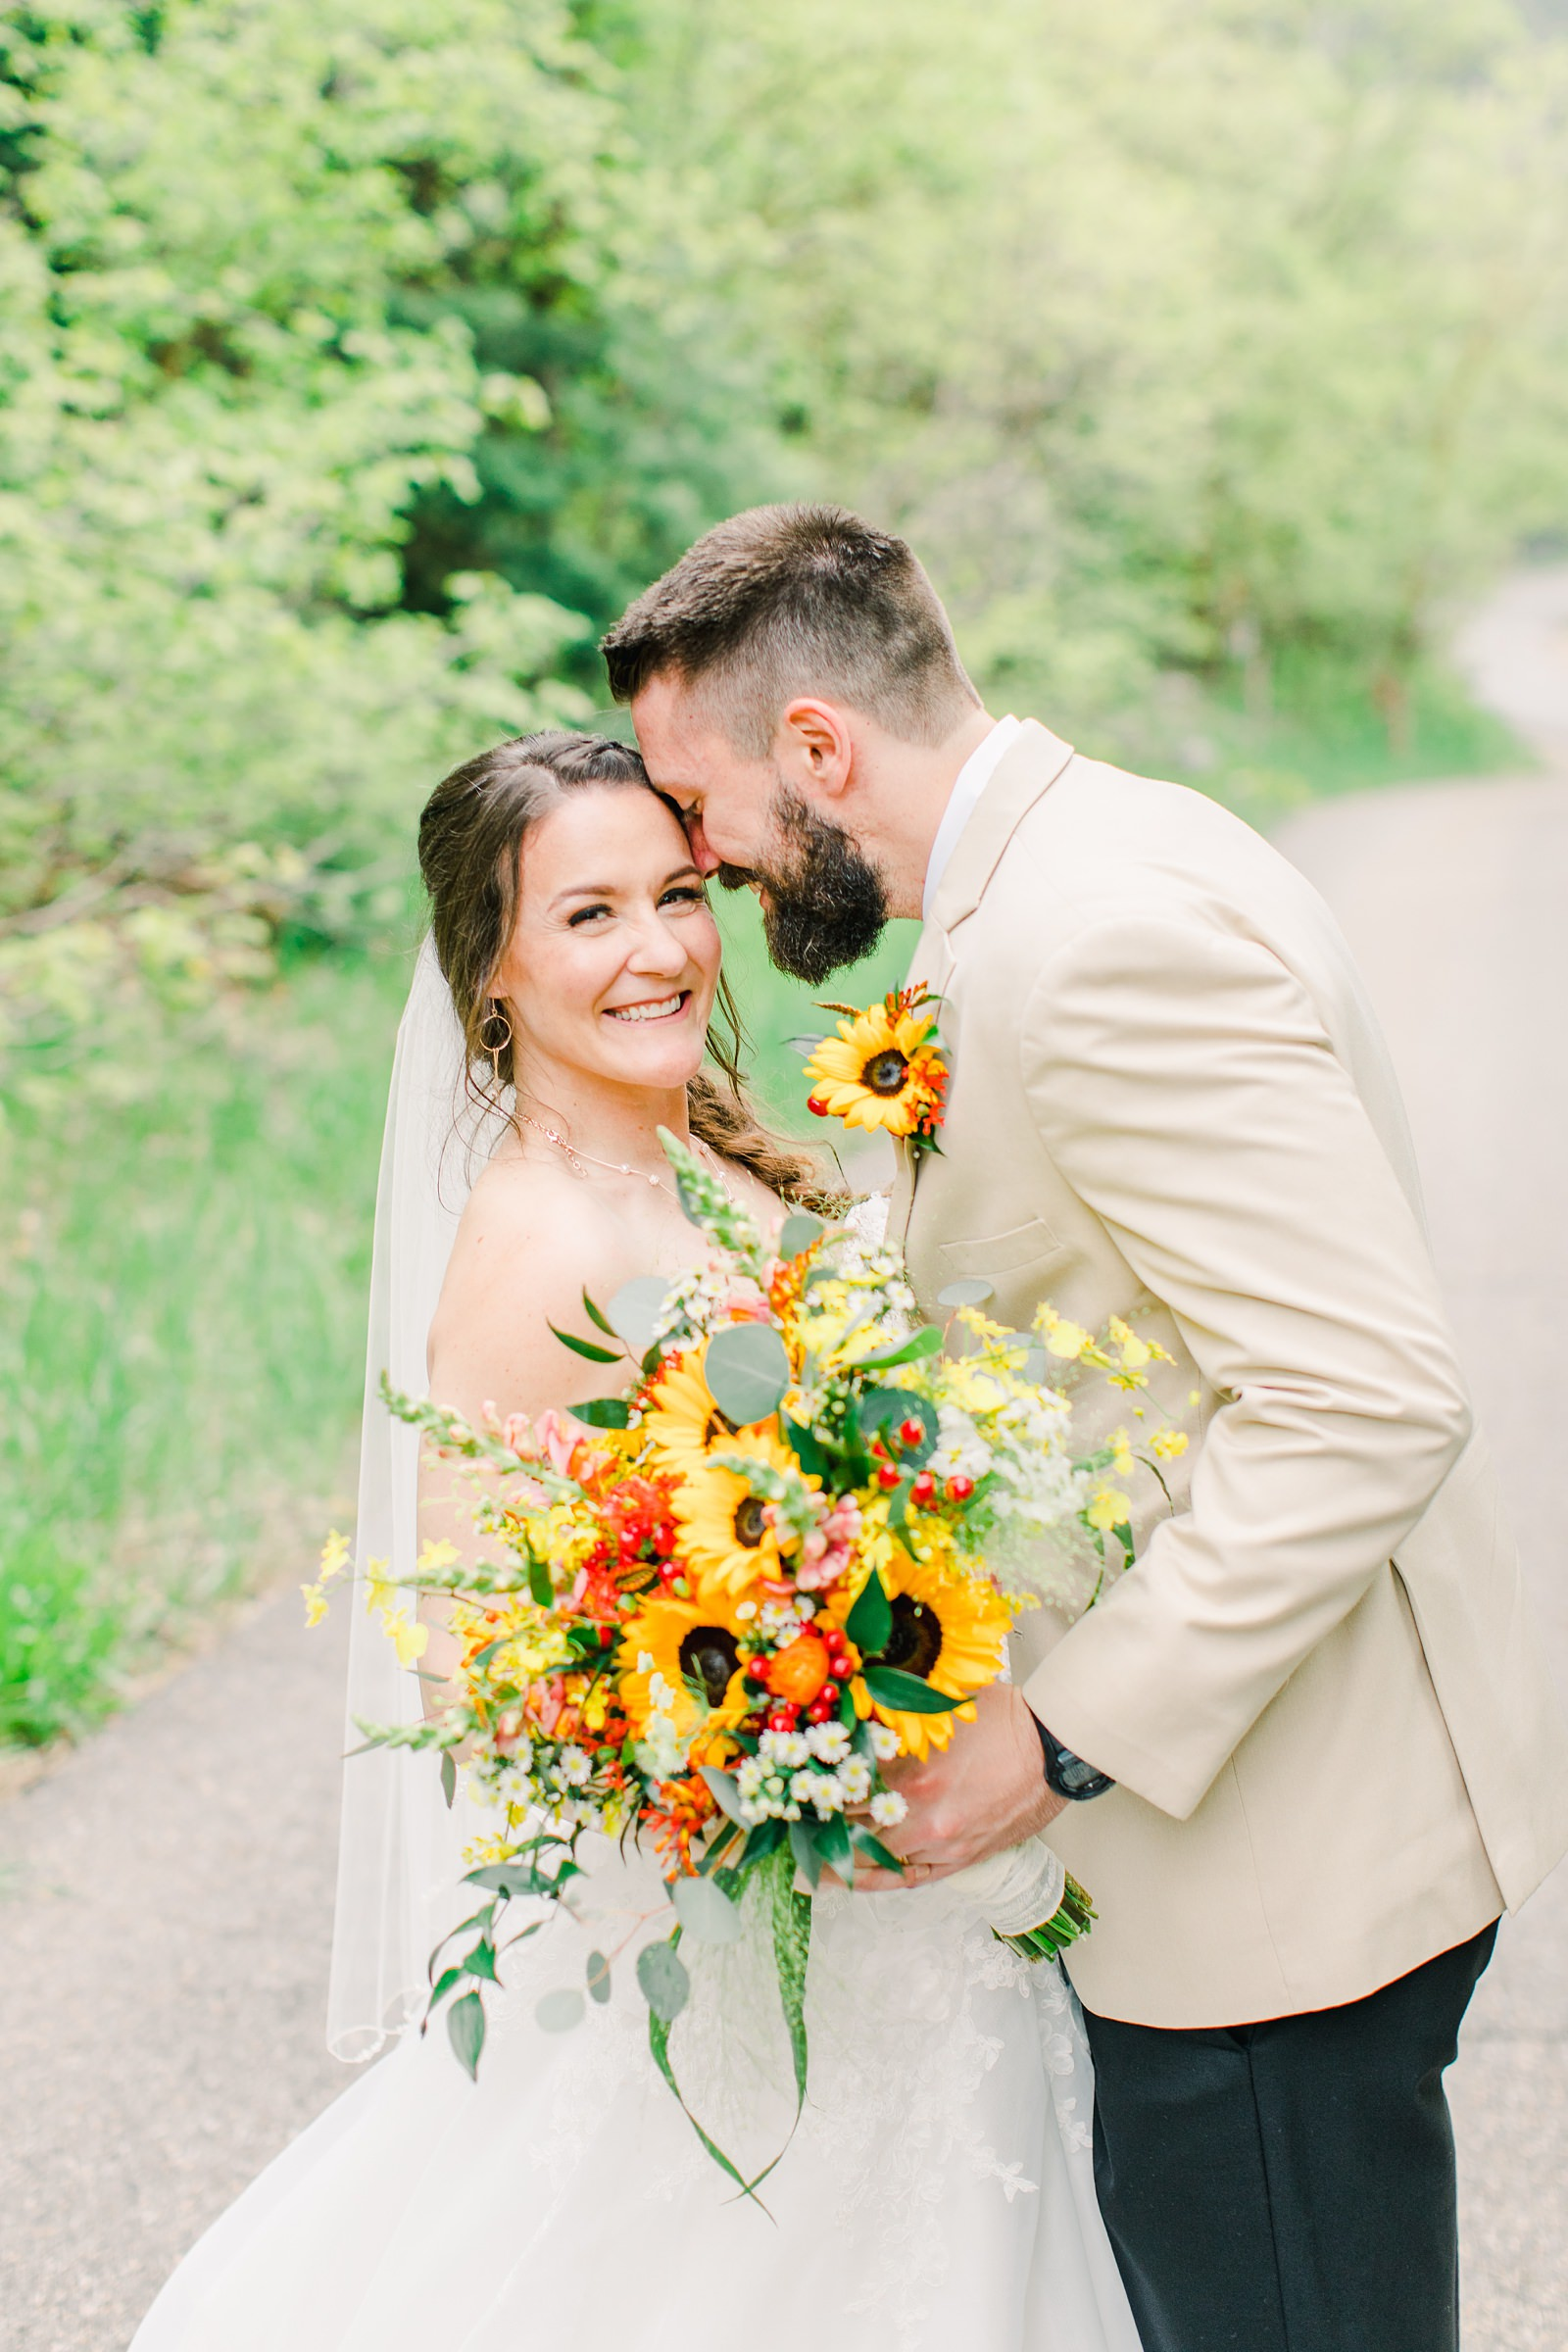 Millcreek Inn Summer Wedding, Utah wedding photography Millcreek Canyon, Salt Lake City, bride and groom sunflower yellow and orange bouquet wedding flowers